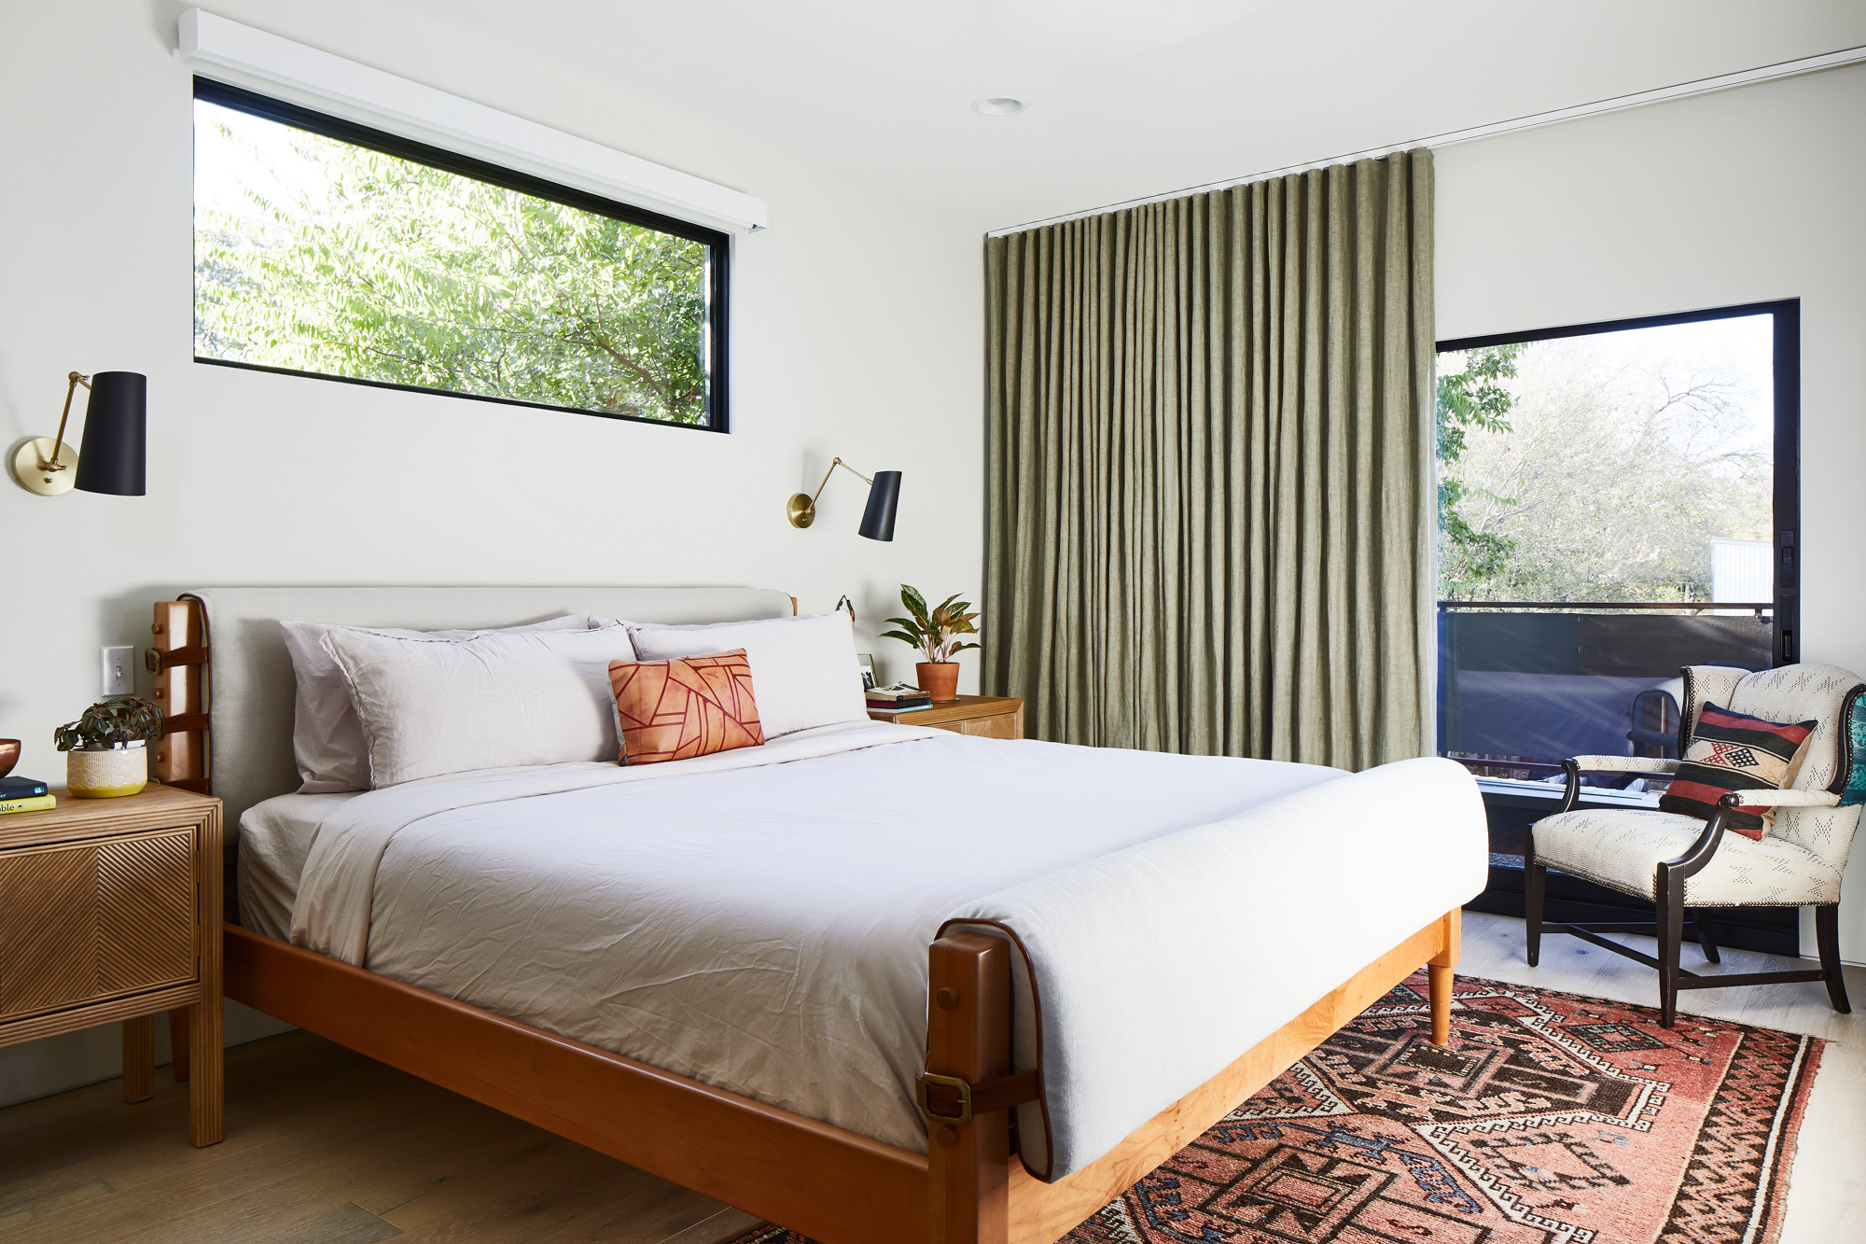 neutral-colored master bedroom with wood accents